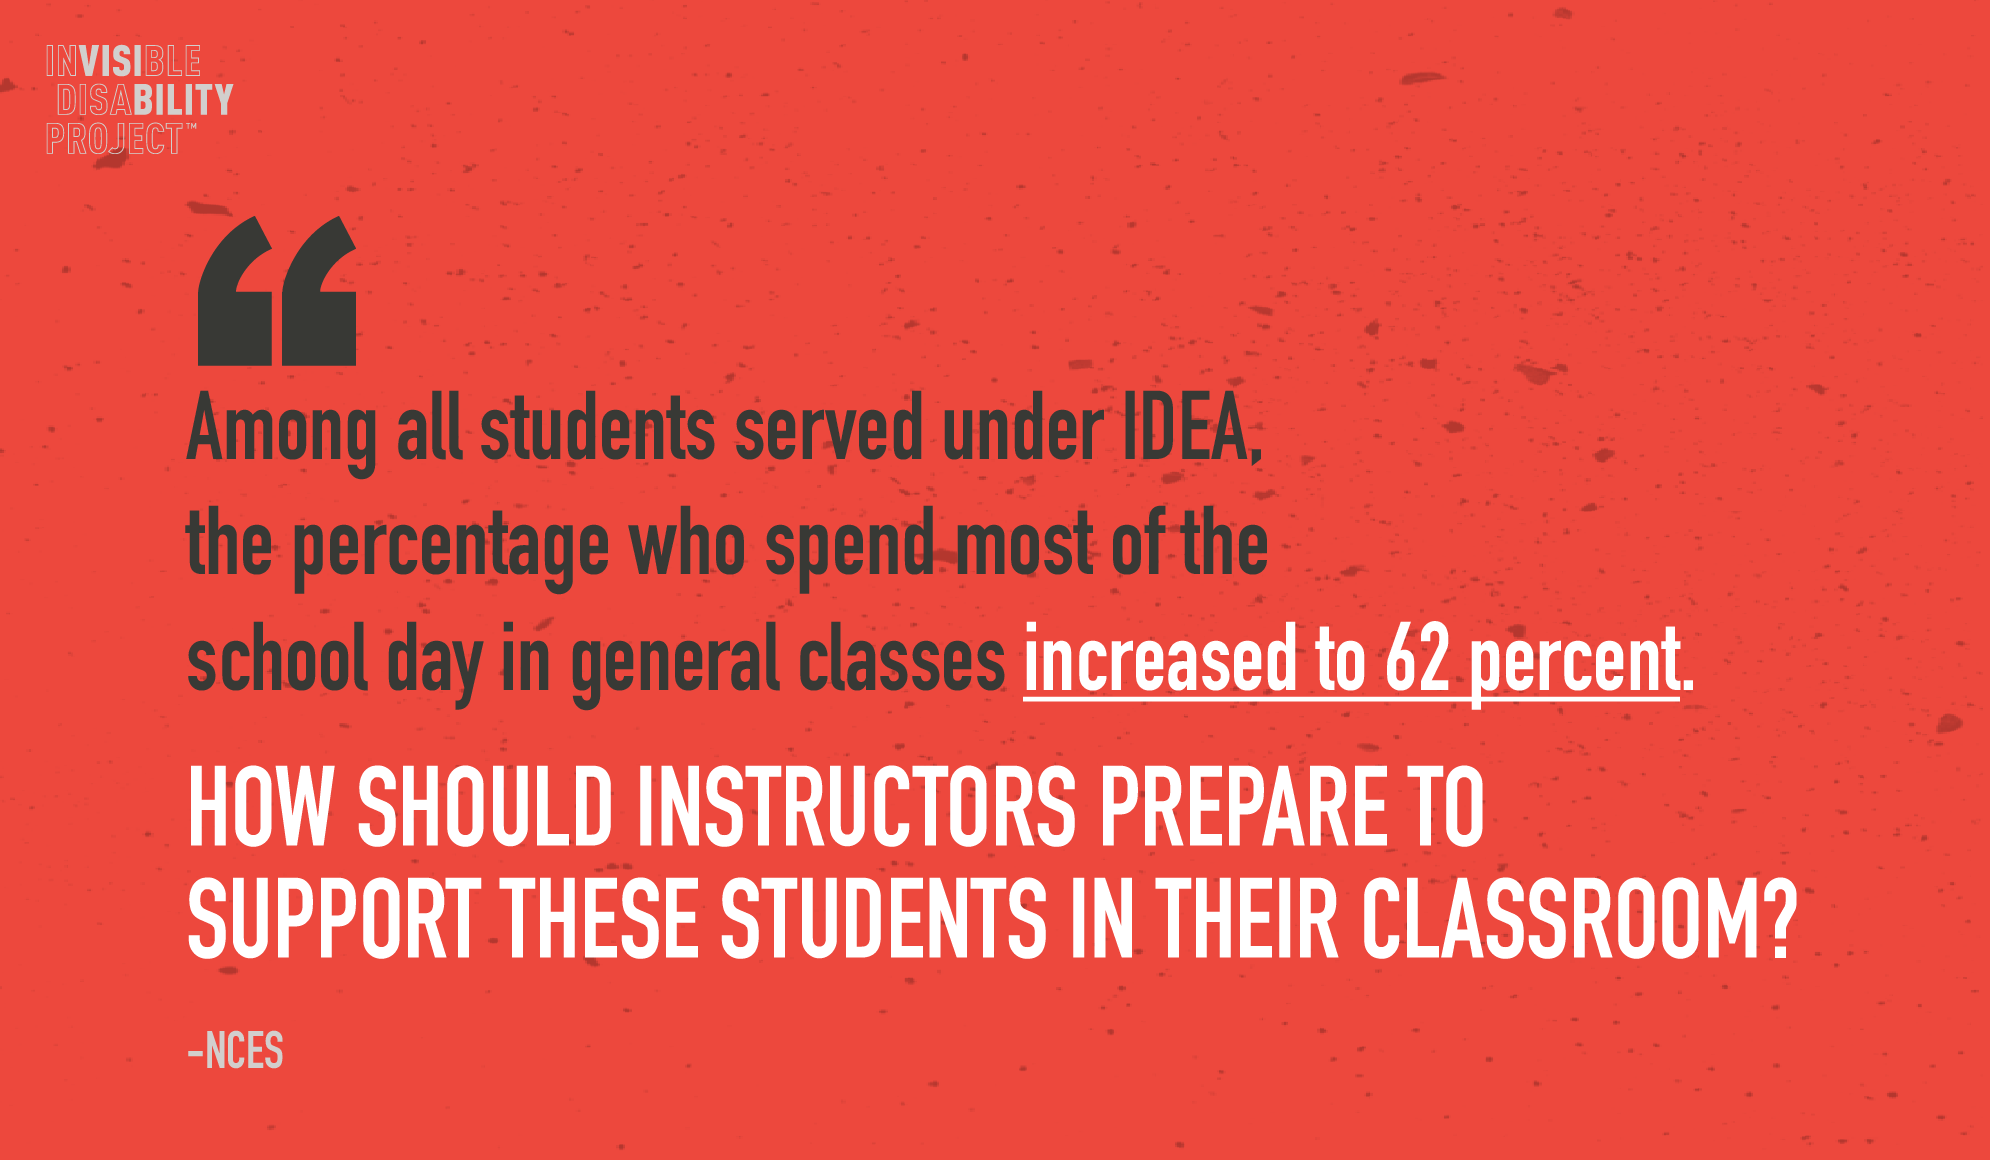 Among all students served under IDEA, the percentage who spend most of the school day in general classes increased to 62 percent (NCES). How should instructors prepare to support these students in their classroom?